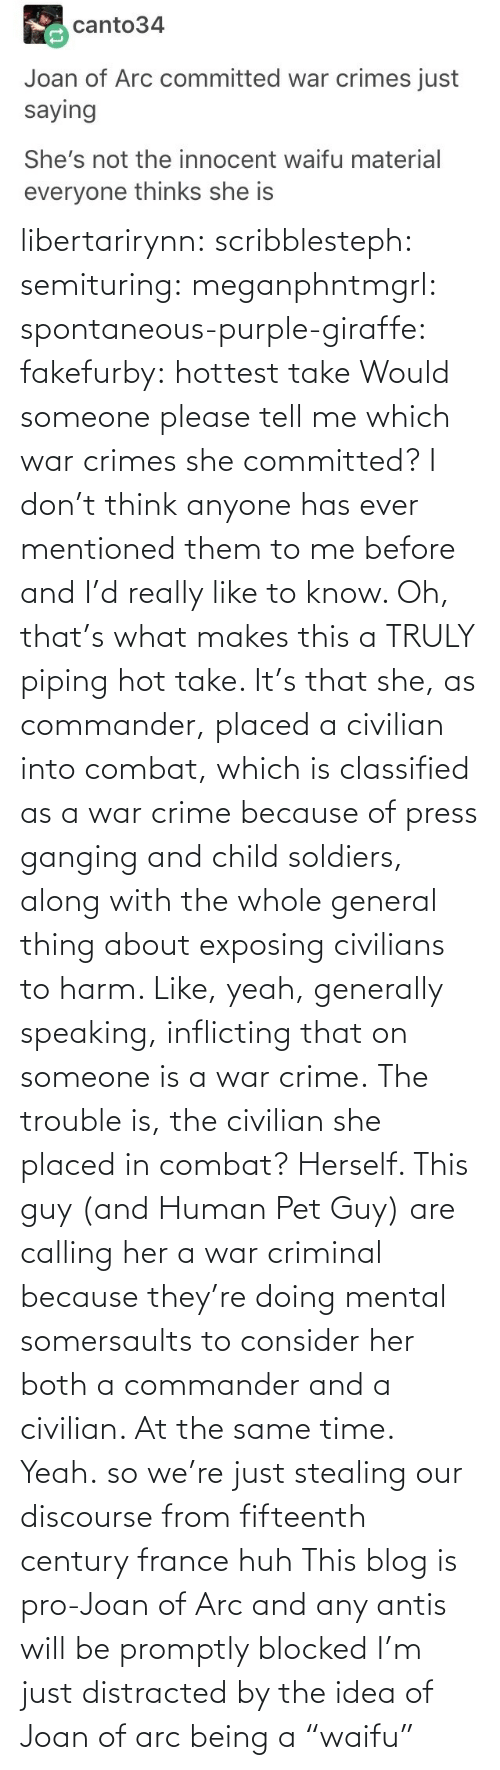 "know: libertarirynn: scribblesteph:  semituring:  meganphntmgrl:  spontaneous-purple-giraffe:   fakefurby: hottest take  Would someone please tell me which war crimes she committed? I don't think anyone has ever mentioned them to me before and I'd really like to know.    Oh, that's what makes this a TRULY piping hot take. It's that she, as commander, placed a civilian into combat, which is classified as a war crime because of press ganging and child soldiers, along with the whole general thing about exposing civilians to harm. Like, yeah, generally speaking, inflicting that on someone is a war crime. The trouble is, the civilian she placed in combat? Herself.  This guy (and Human Pet Guy) are calling her a war criminal because they're doing mental somersaults to consider her both a commander and a civilian. At the same time.  Yeah.  so we're just stealing our discourse from fifteenth century france huh   This blog is pro-Joan of Arc and any antis will be promptly blocked   I'm just distracted by the idea of Joan of arc being a ""waifu"""